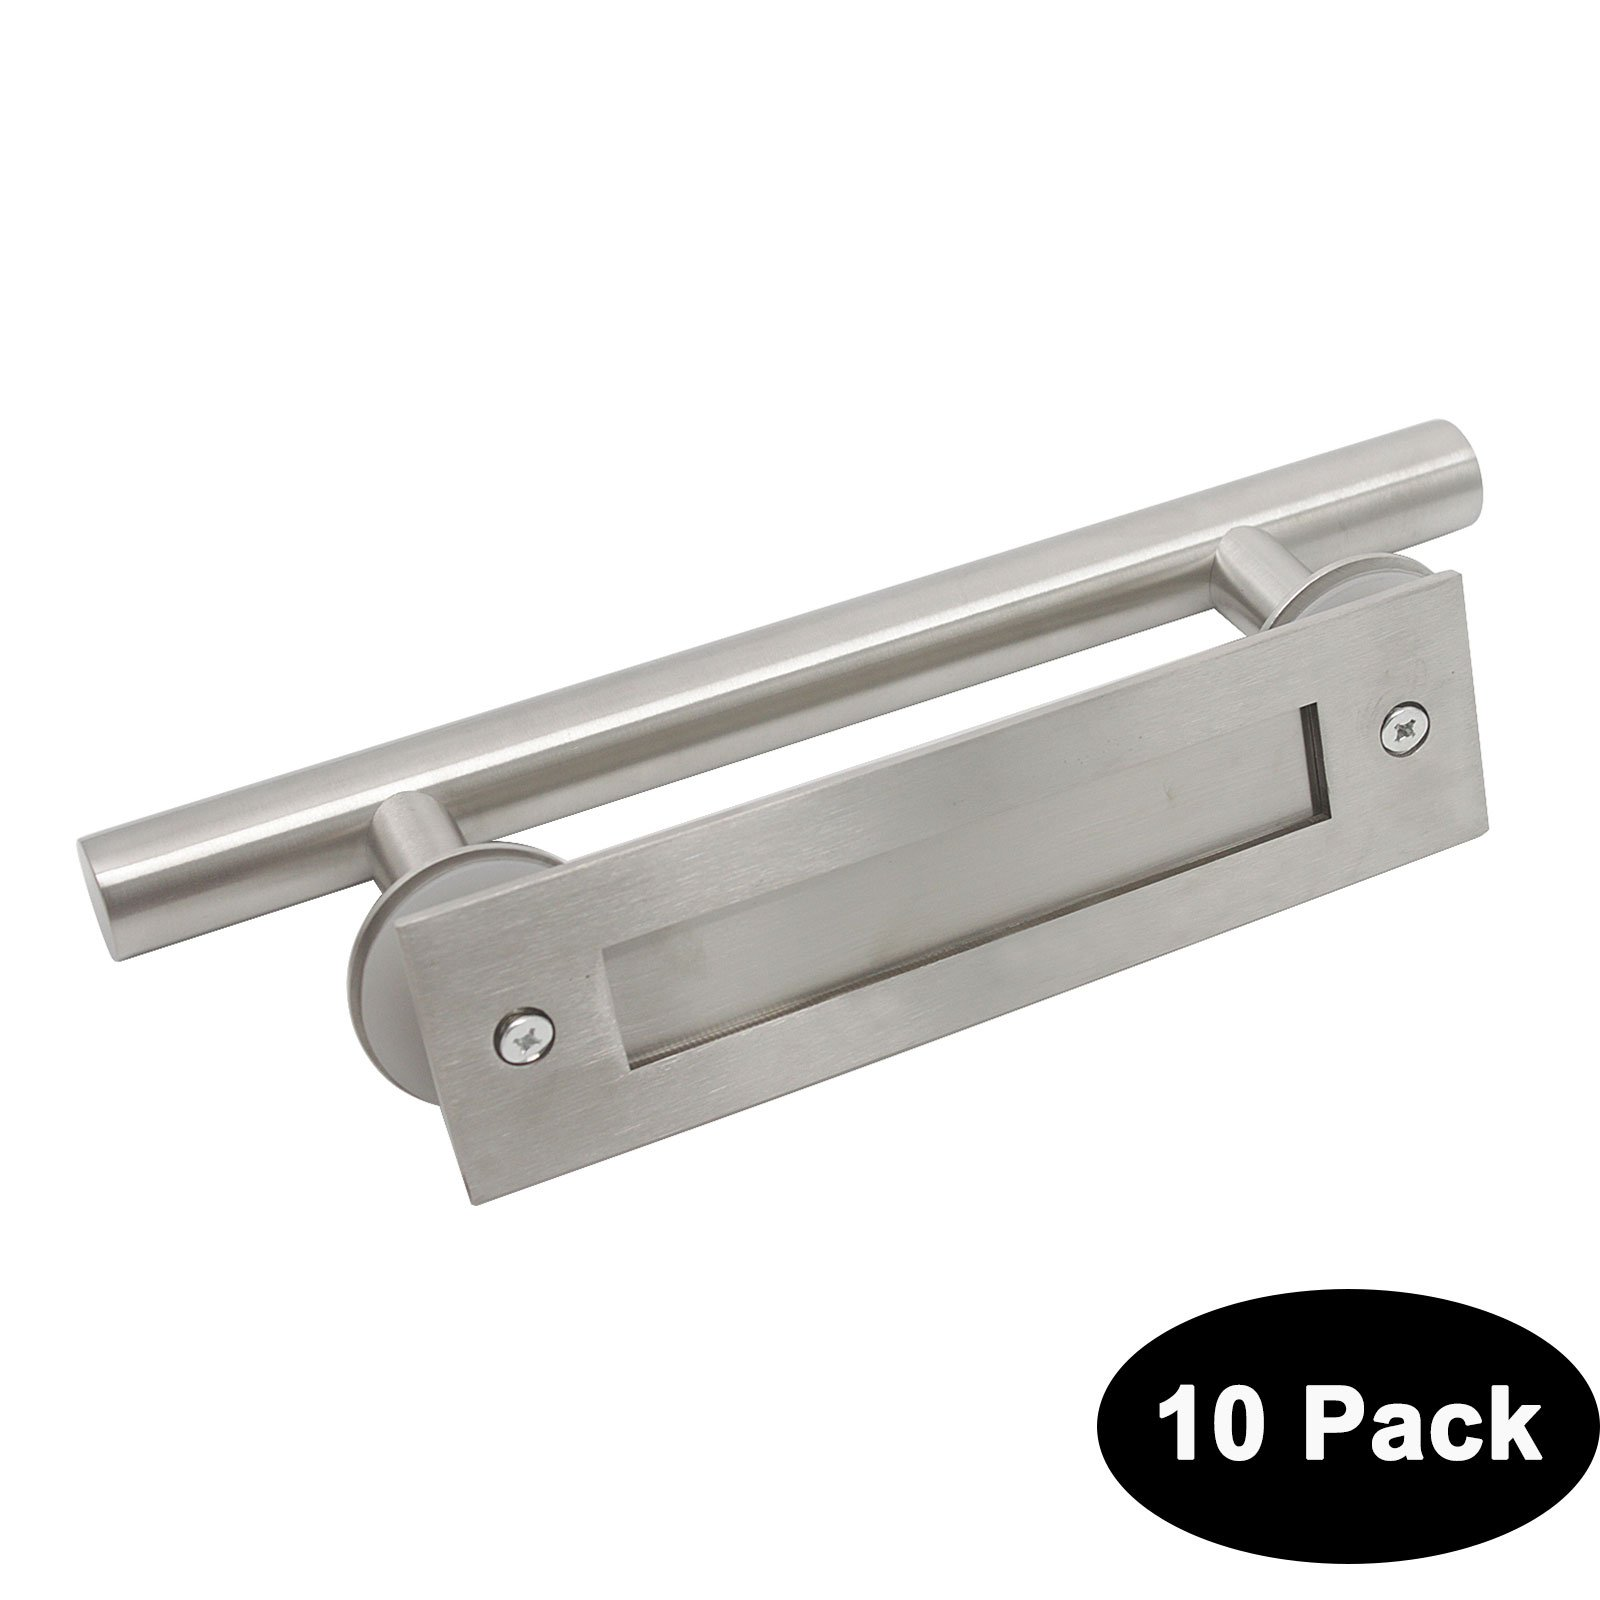 Probrico 304 Stainless Steel Recessed Flush Door Handles Set Brushed Nickel Large Gate Wood Glass Door Pull T Bar 12'' 305mm 10 Pack